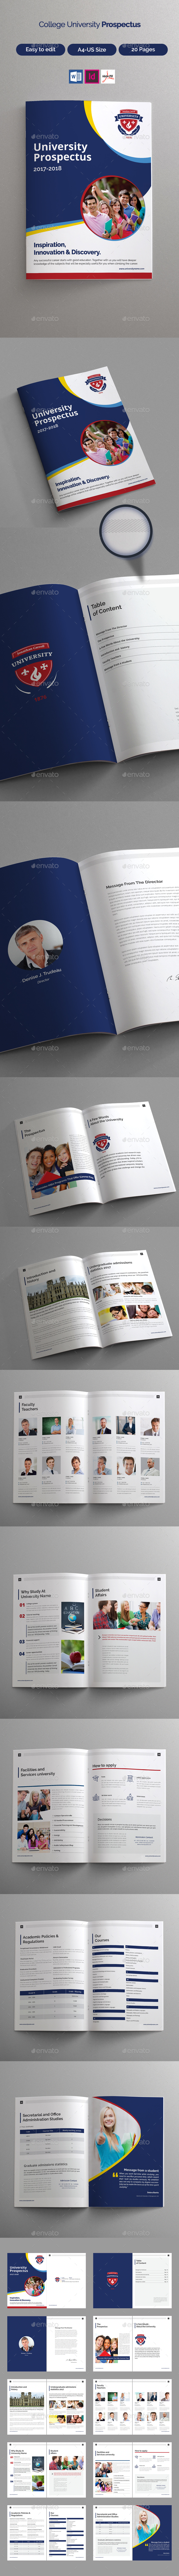 College University Prospectus - Informational Brochures